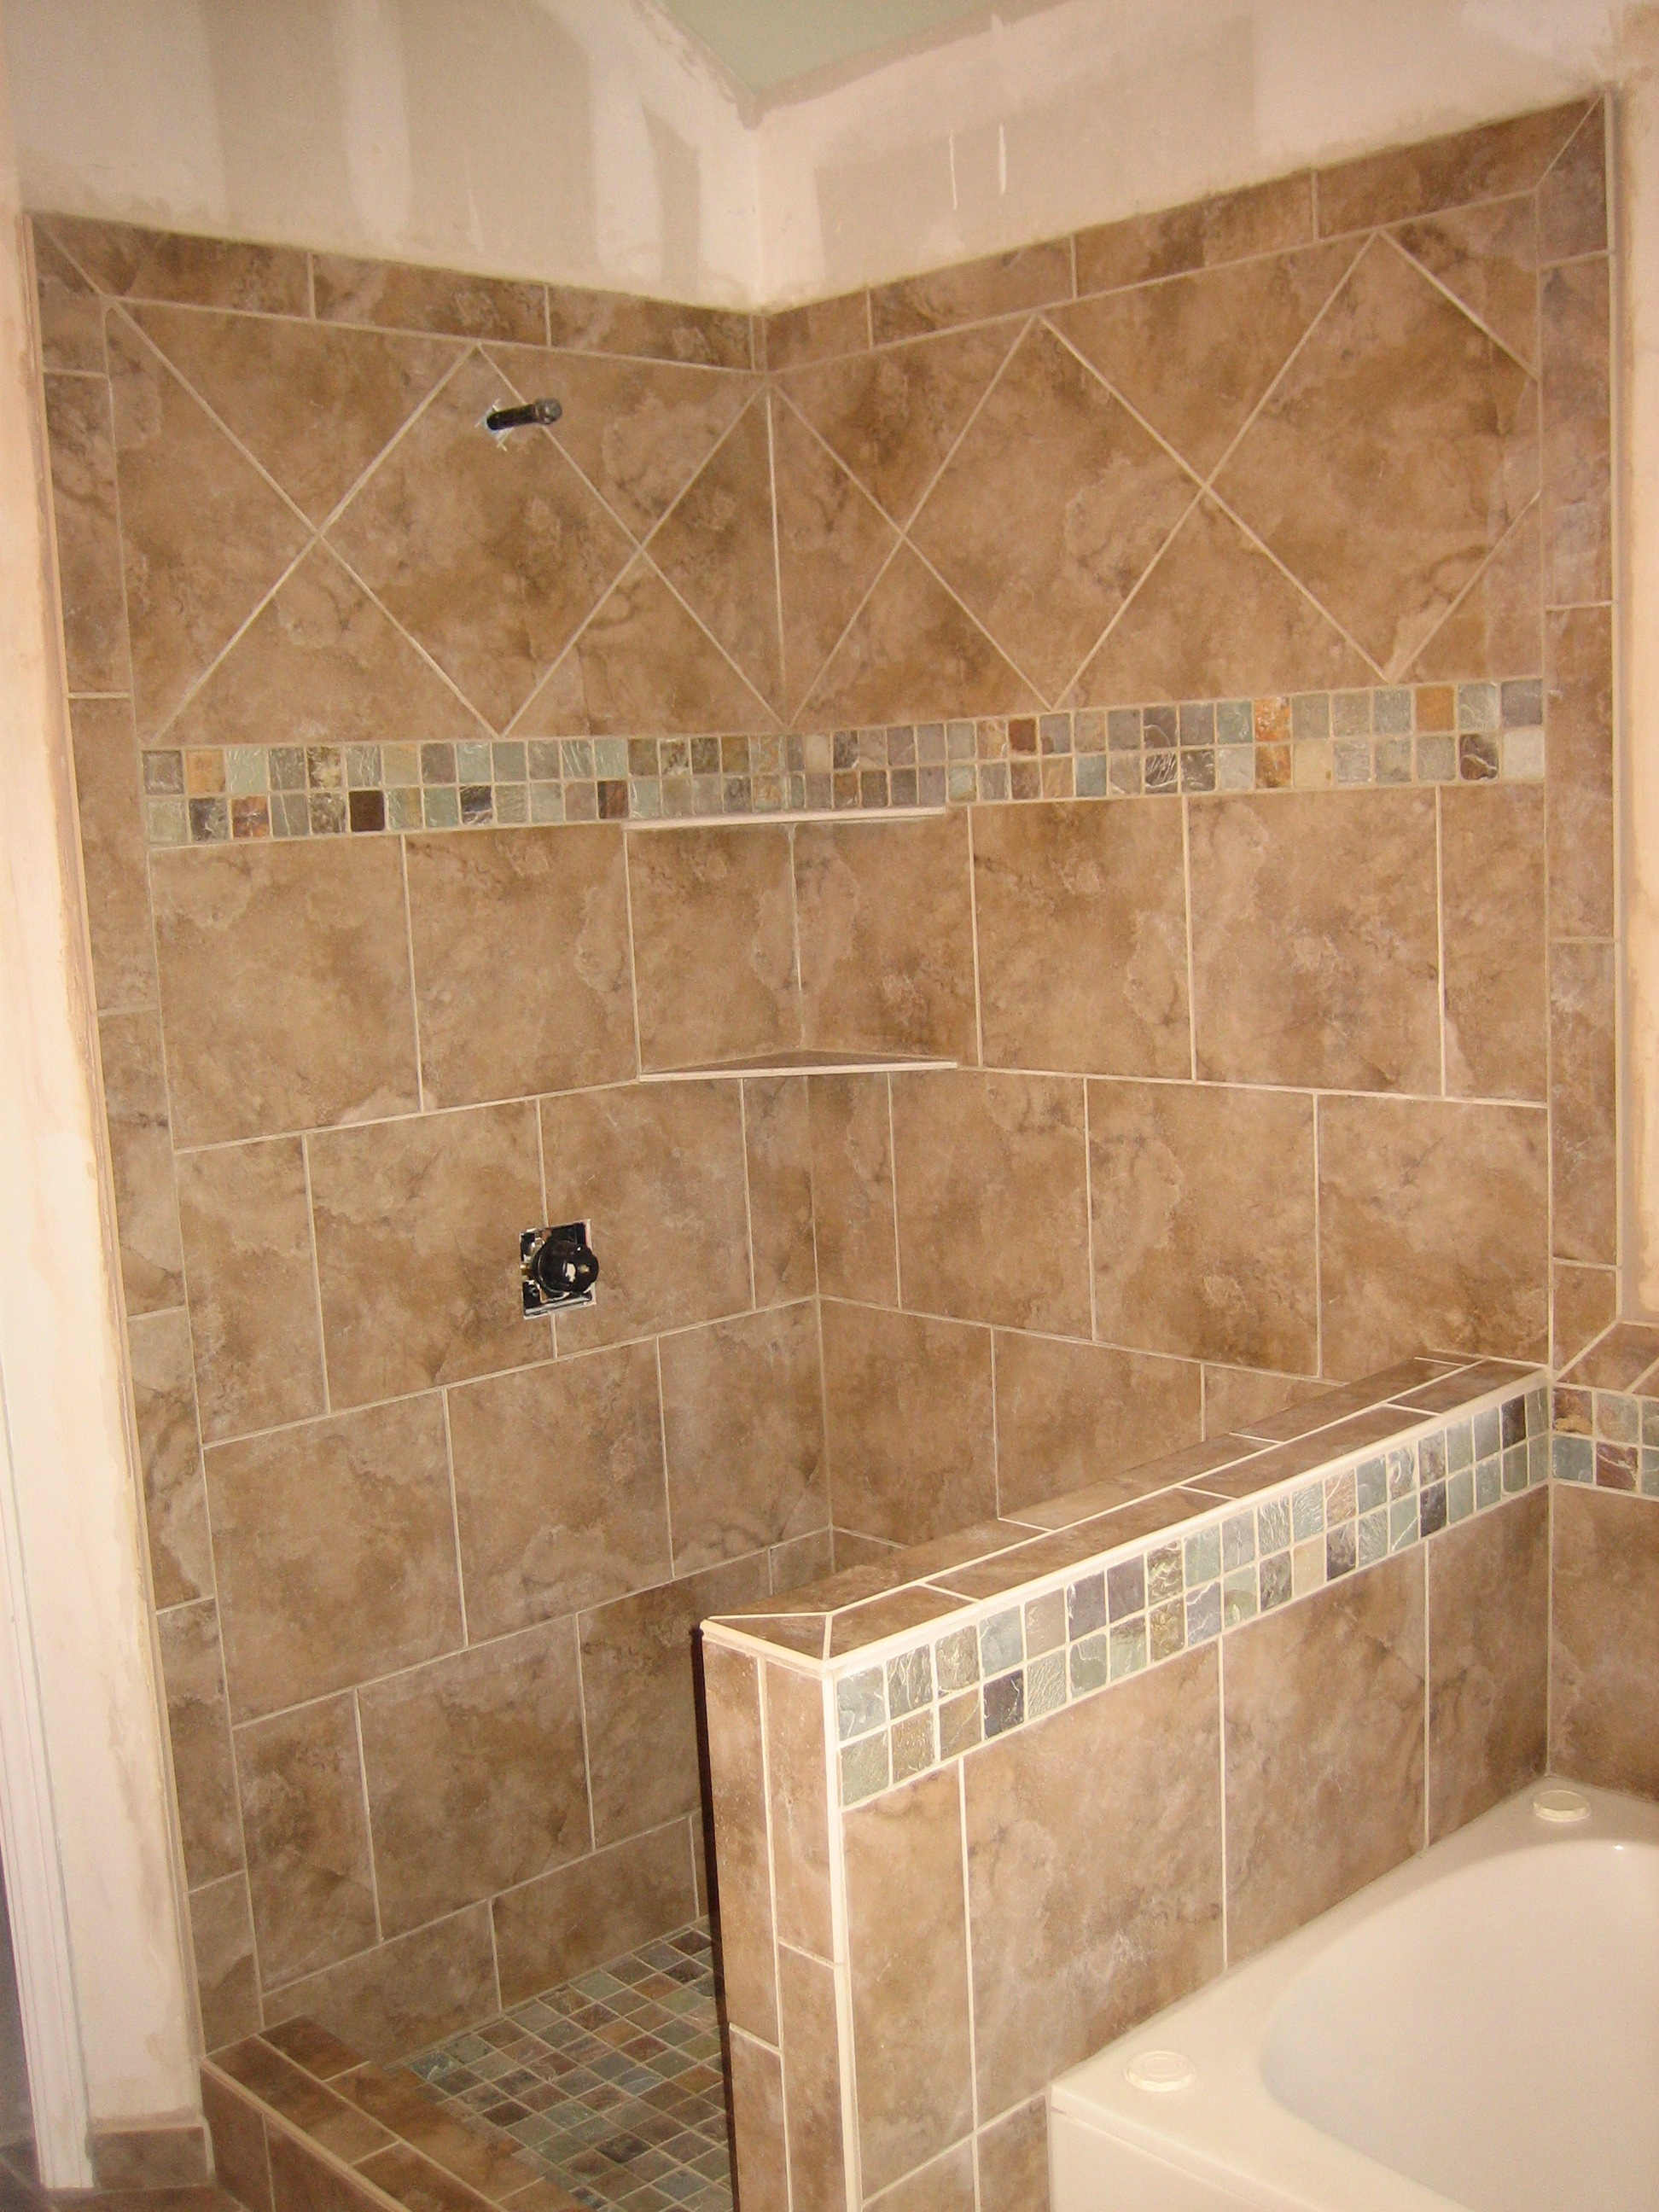 Pictures For Bathroom Walls Shower Pony Wall Tub Surround 9 2008 Rk Tile And Stone